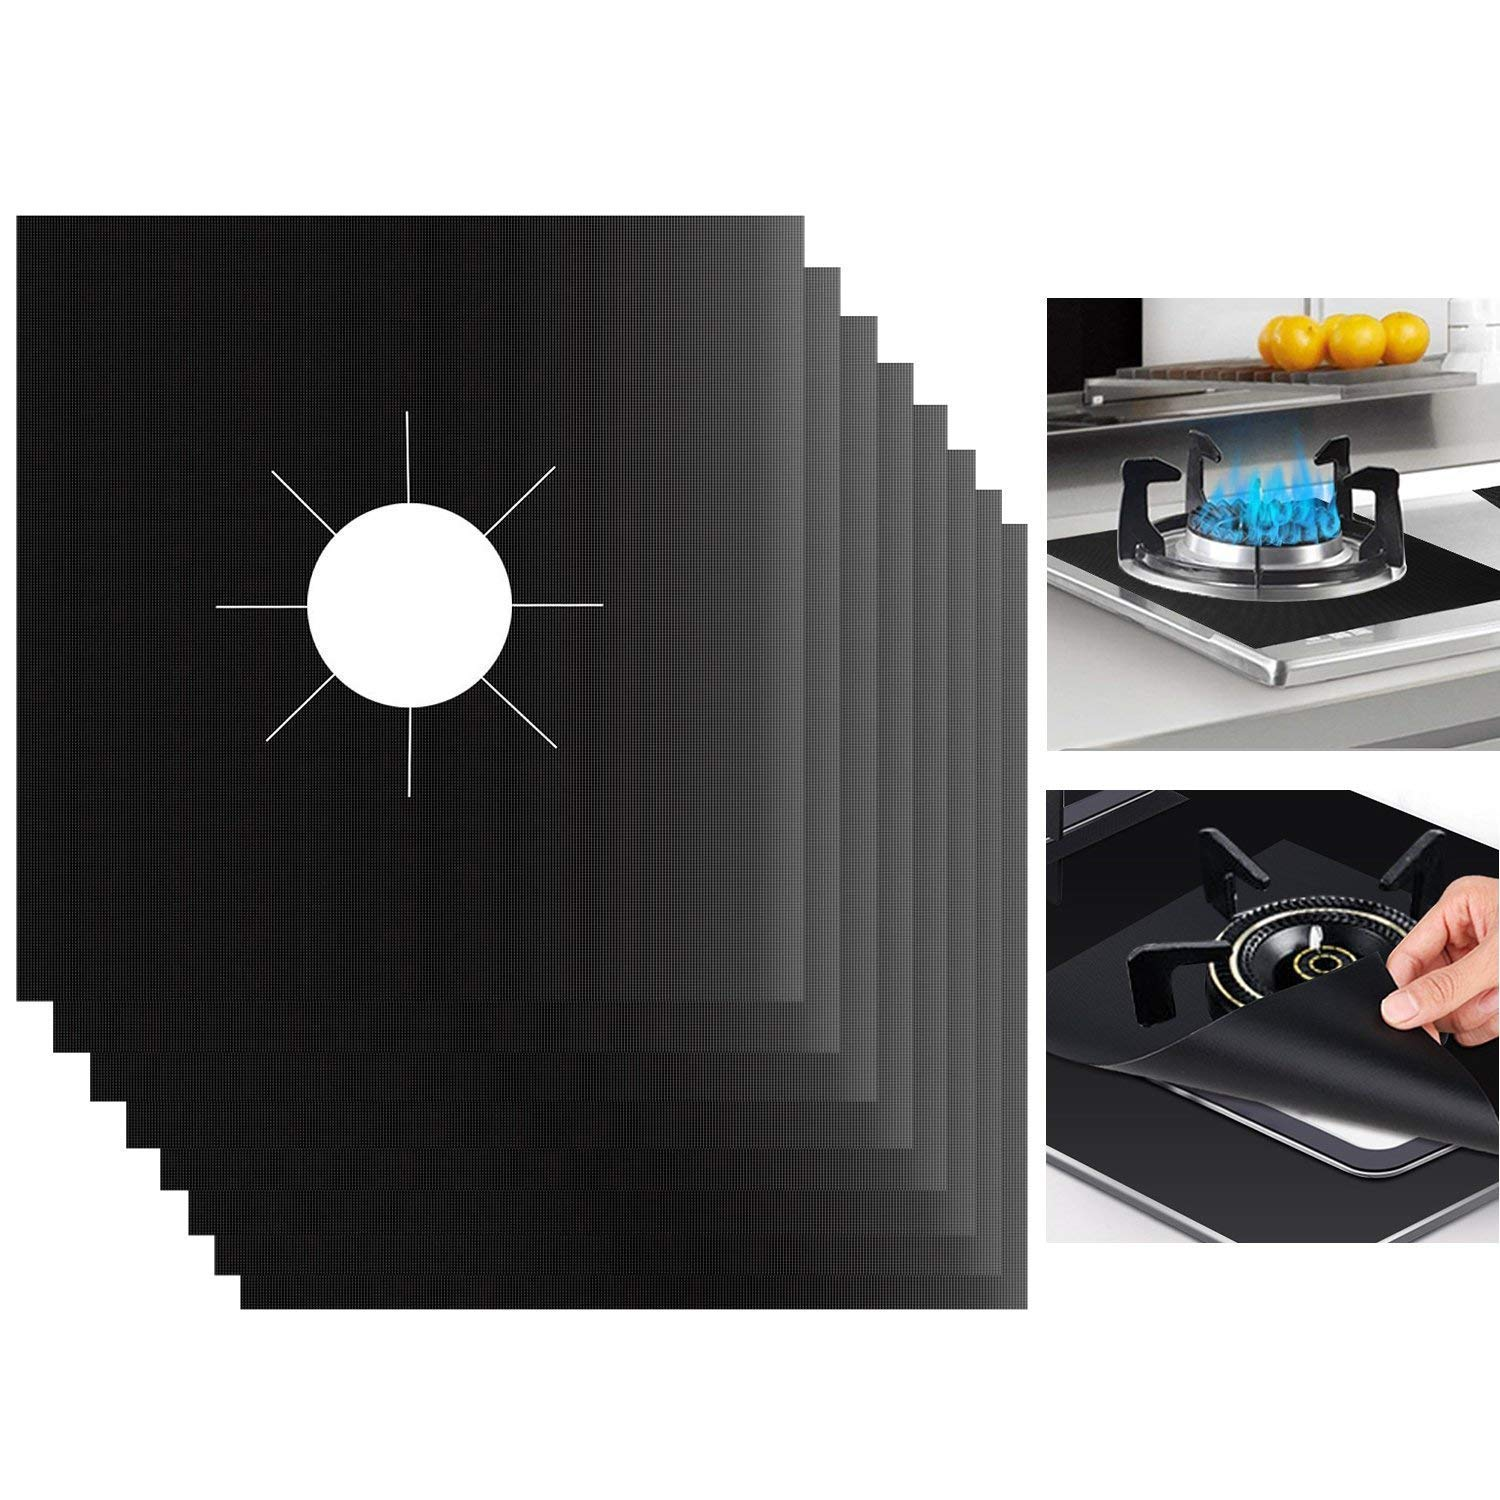 "Heat-resistant for Cooking Gas Range Cover,JUSTDOLIFE Stove Burner Covers 8 Packs Stovetop Burner Liner Thickness Reusable Non-Stick Gas Range Protectors Size 10.6/""x 10.6/"" Dishwasher Safe"